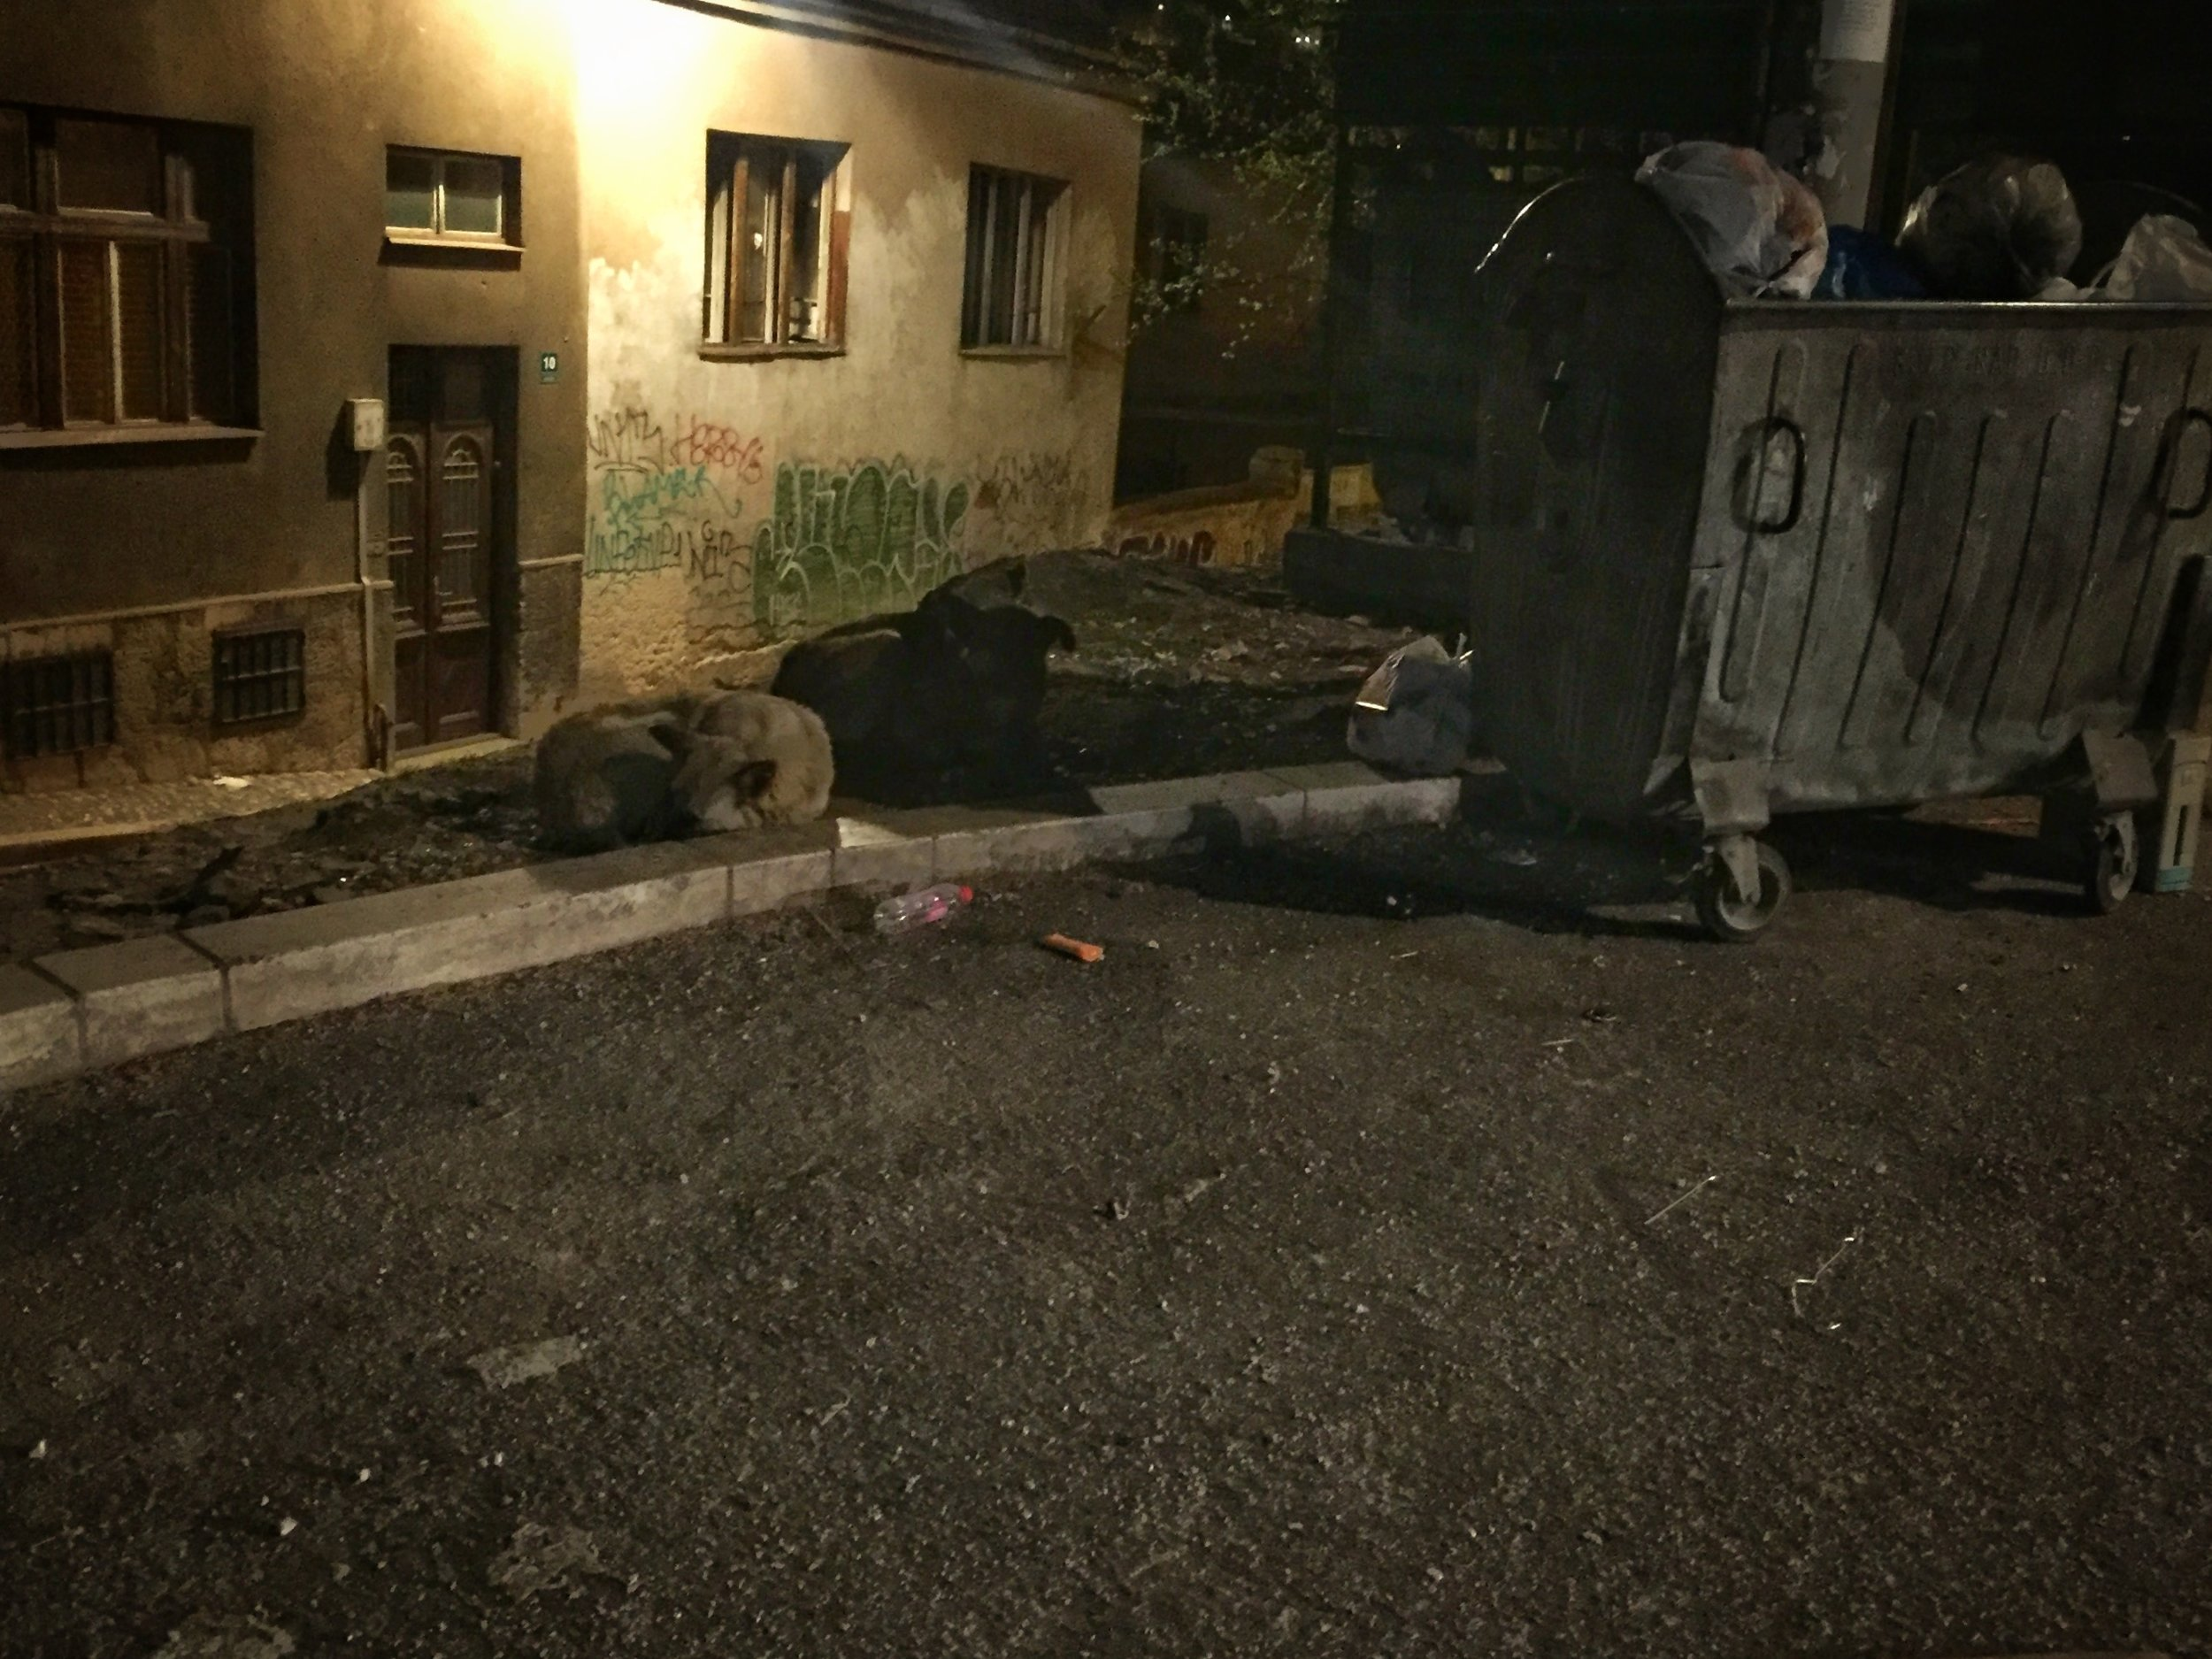 street dogs sleeping near the dumpster